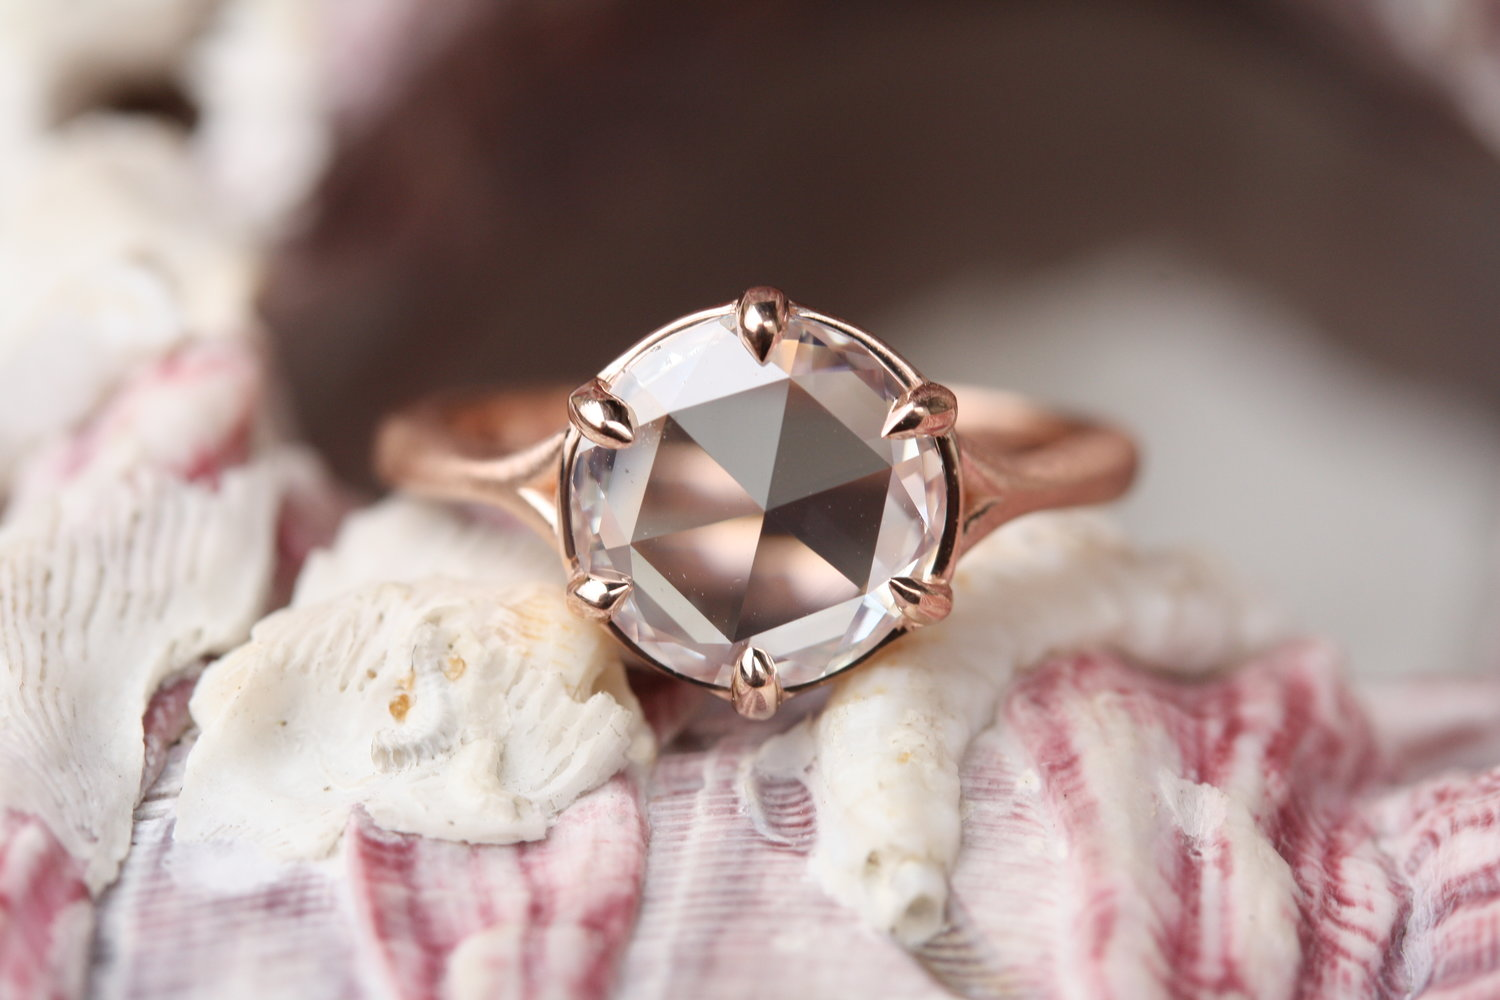 James+Nawrocki+Rose+Cut+Diamond+Set+in+Brushed+Rose+Gold+Engagement+Ring_27.jpg